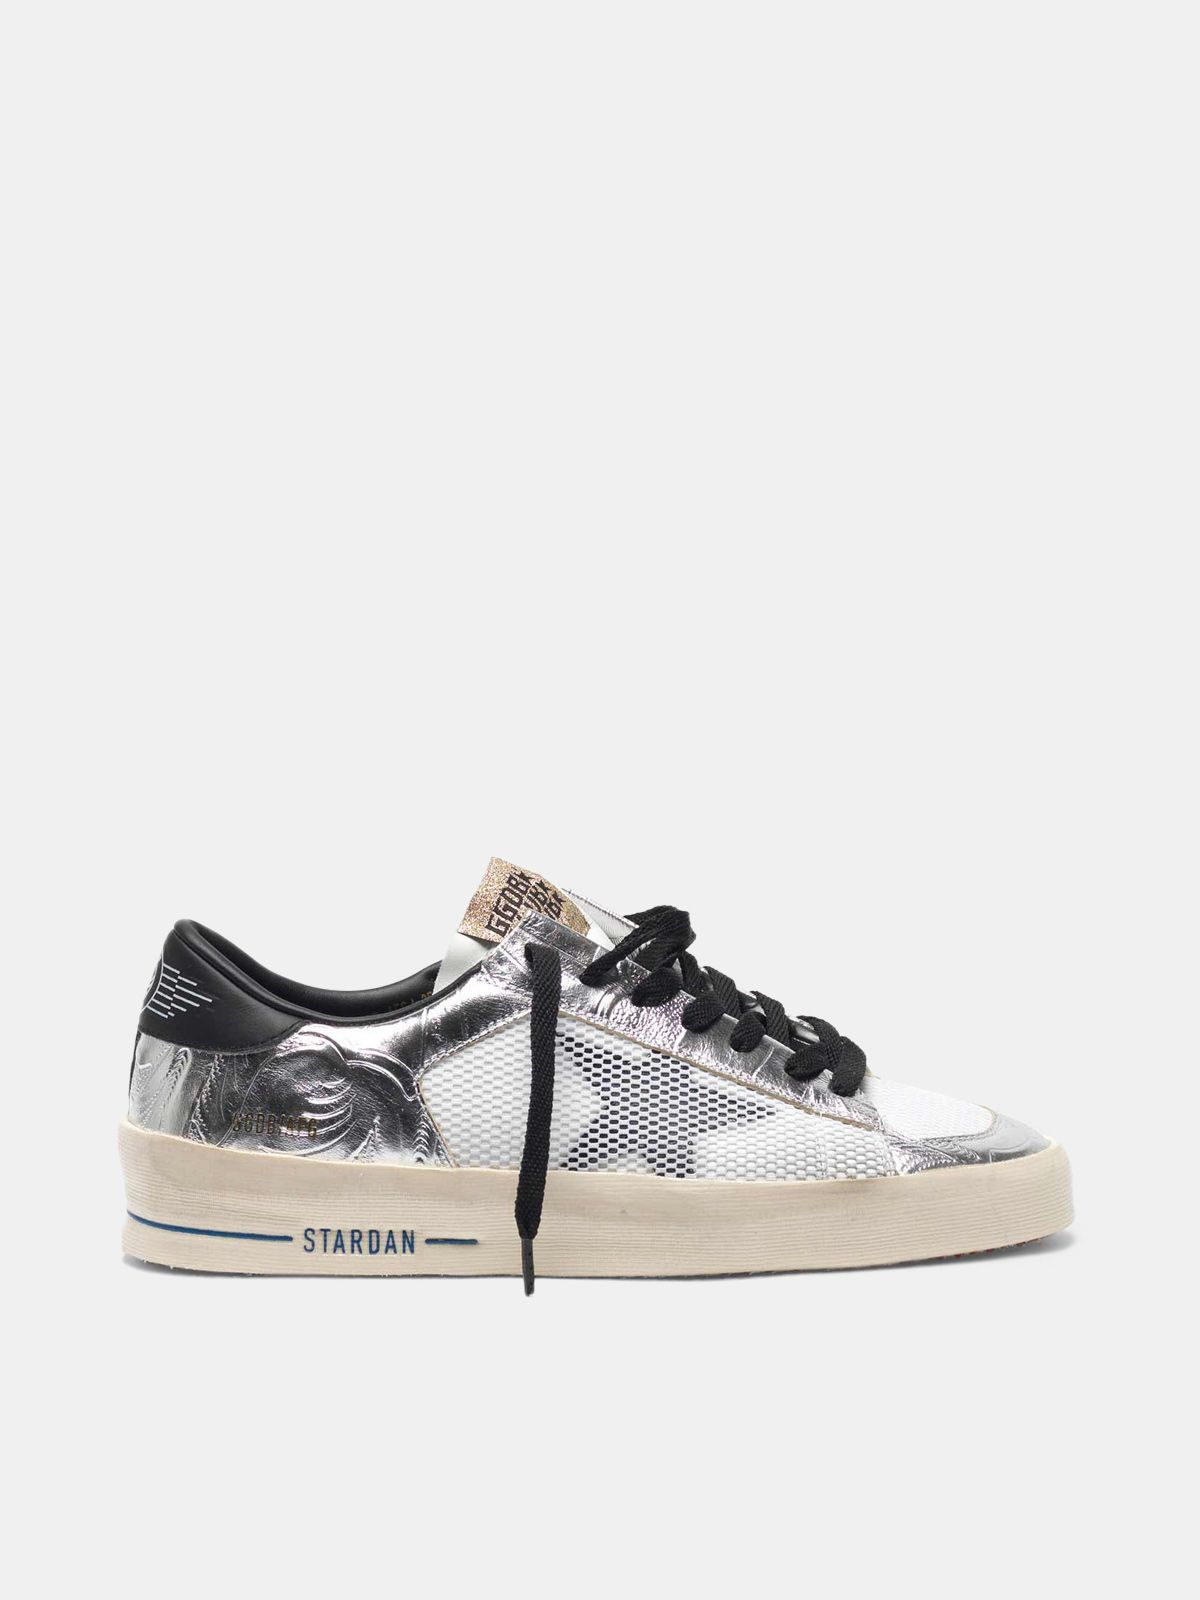 Golden Goose - Stardan sneakers in laminated silver with floral design relief in